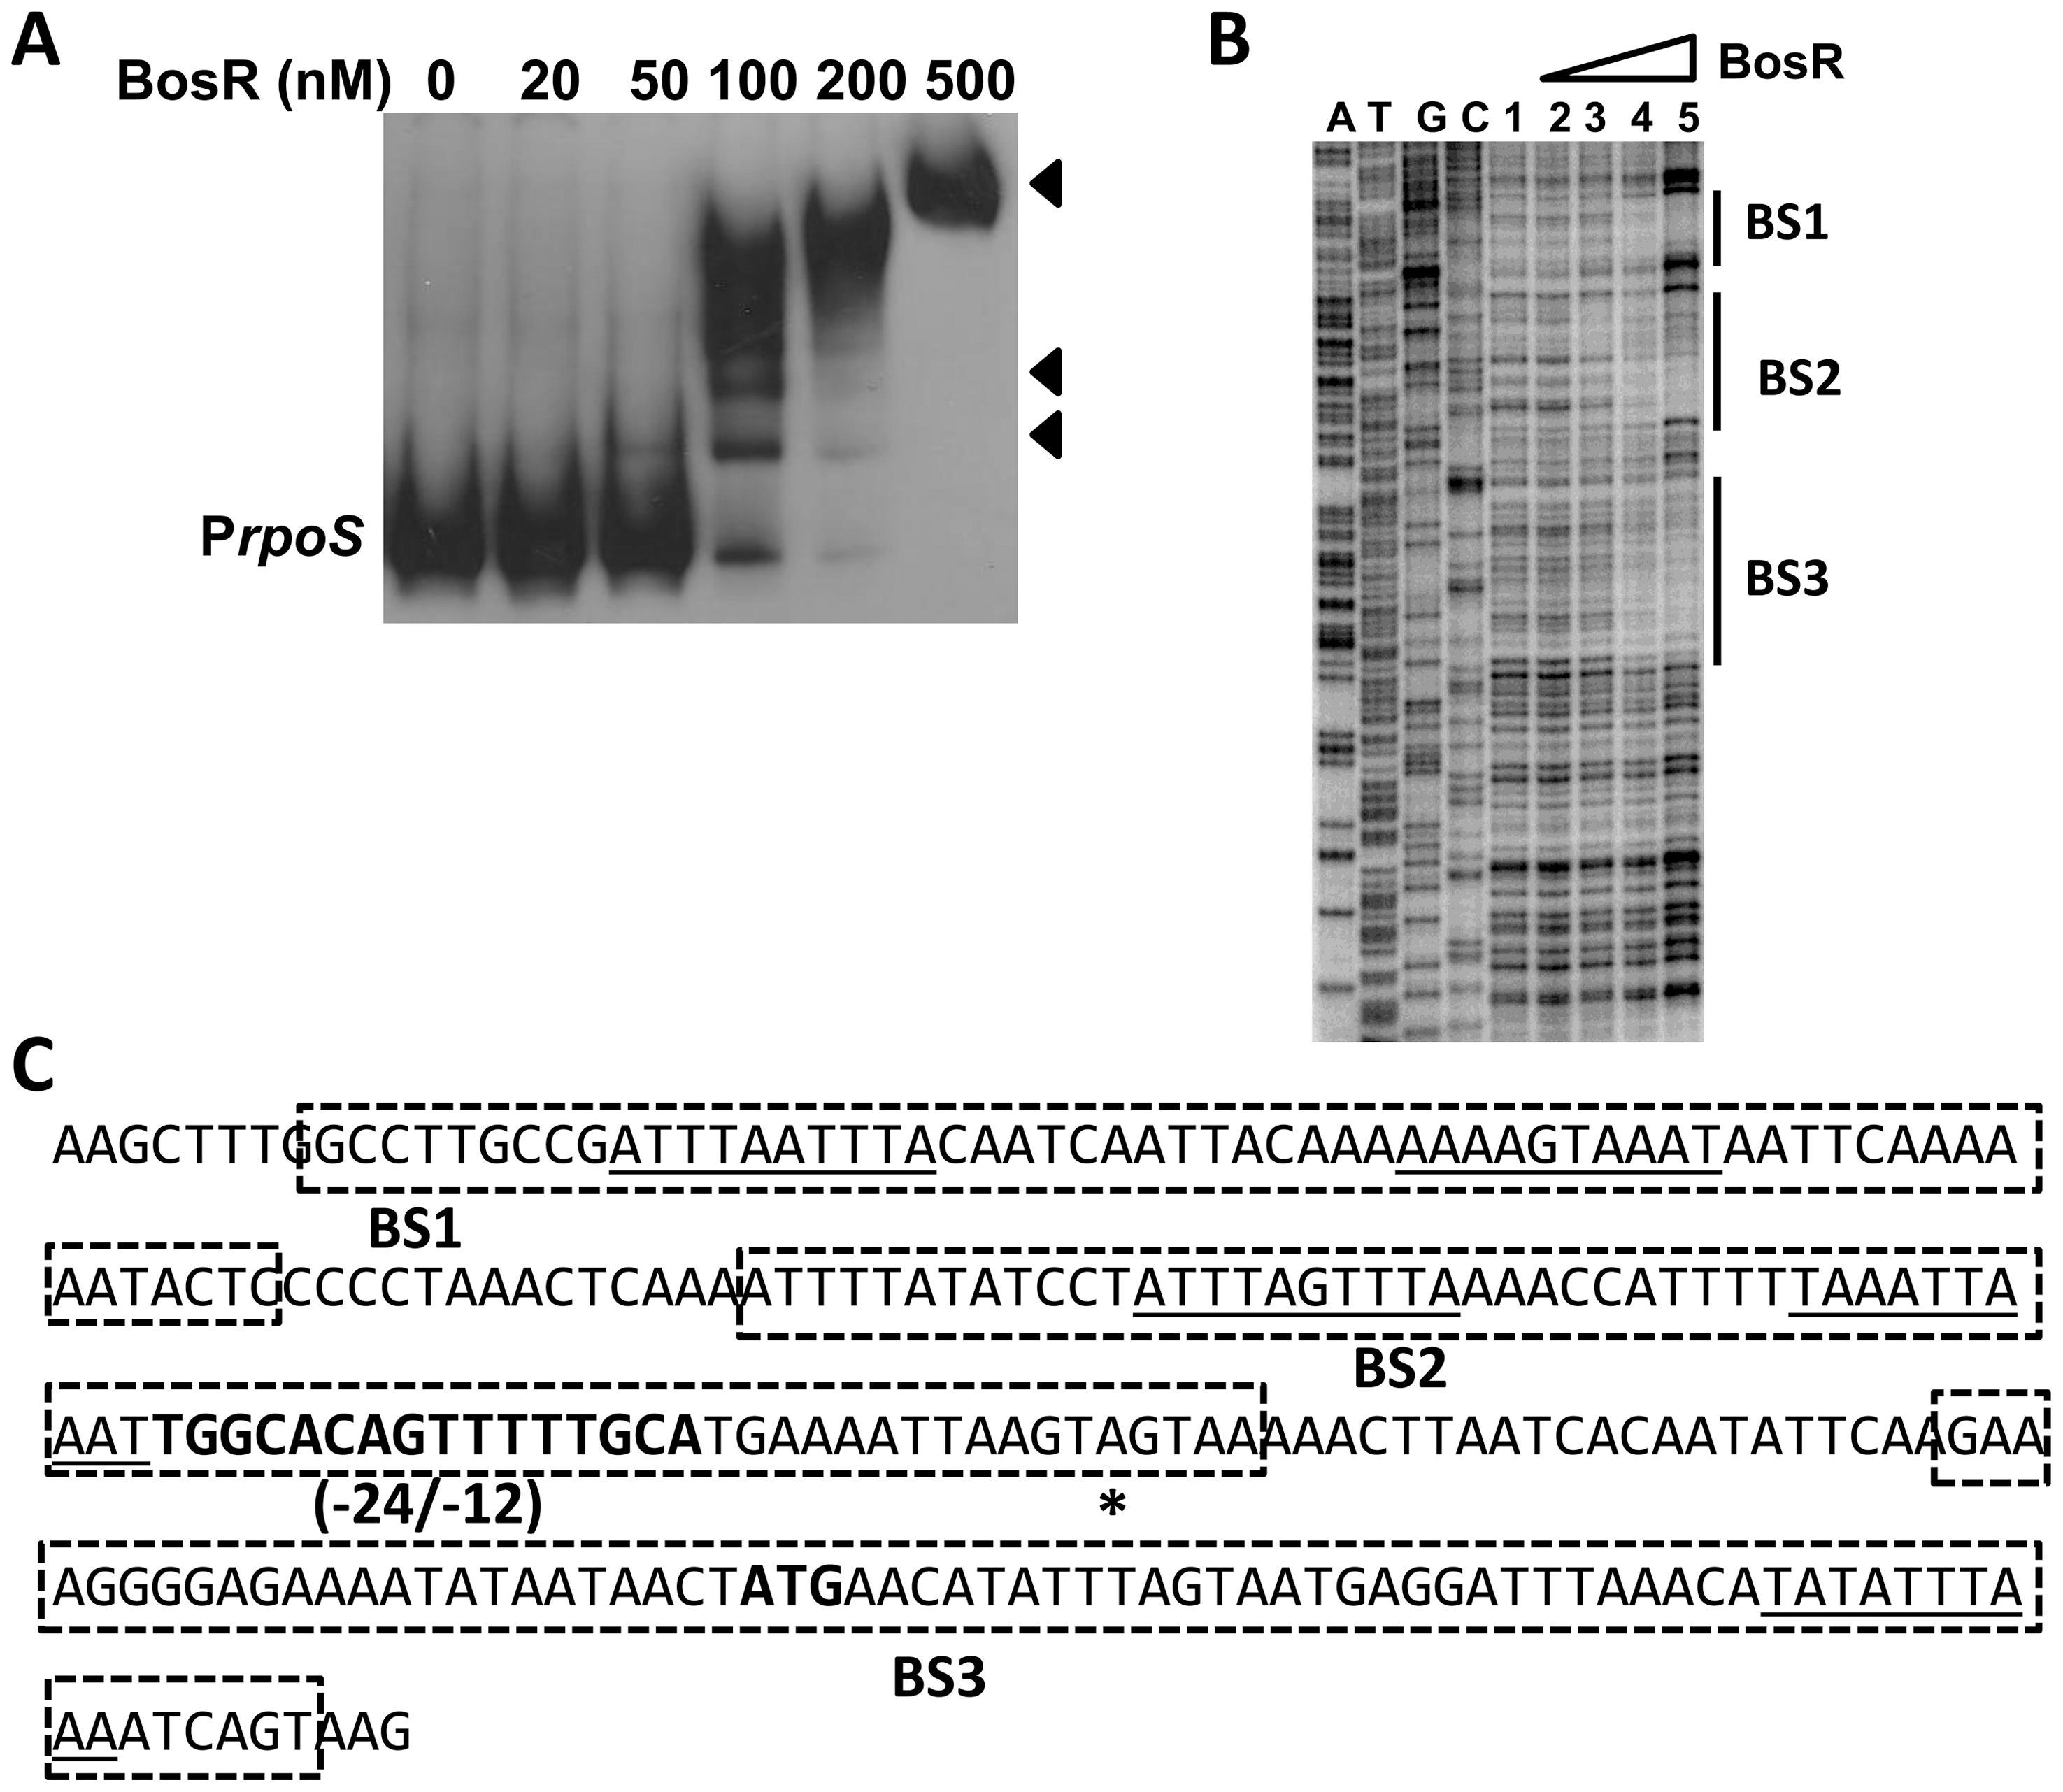 BosR binds to the <i>rpoS</i> promoter.